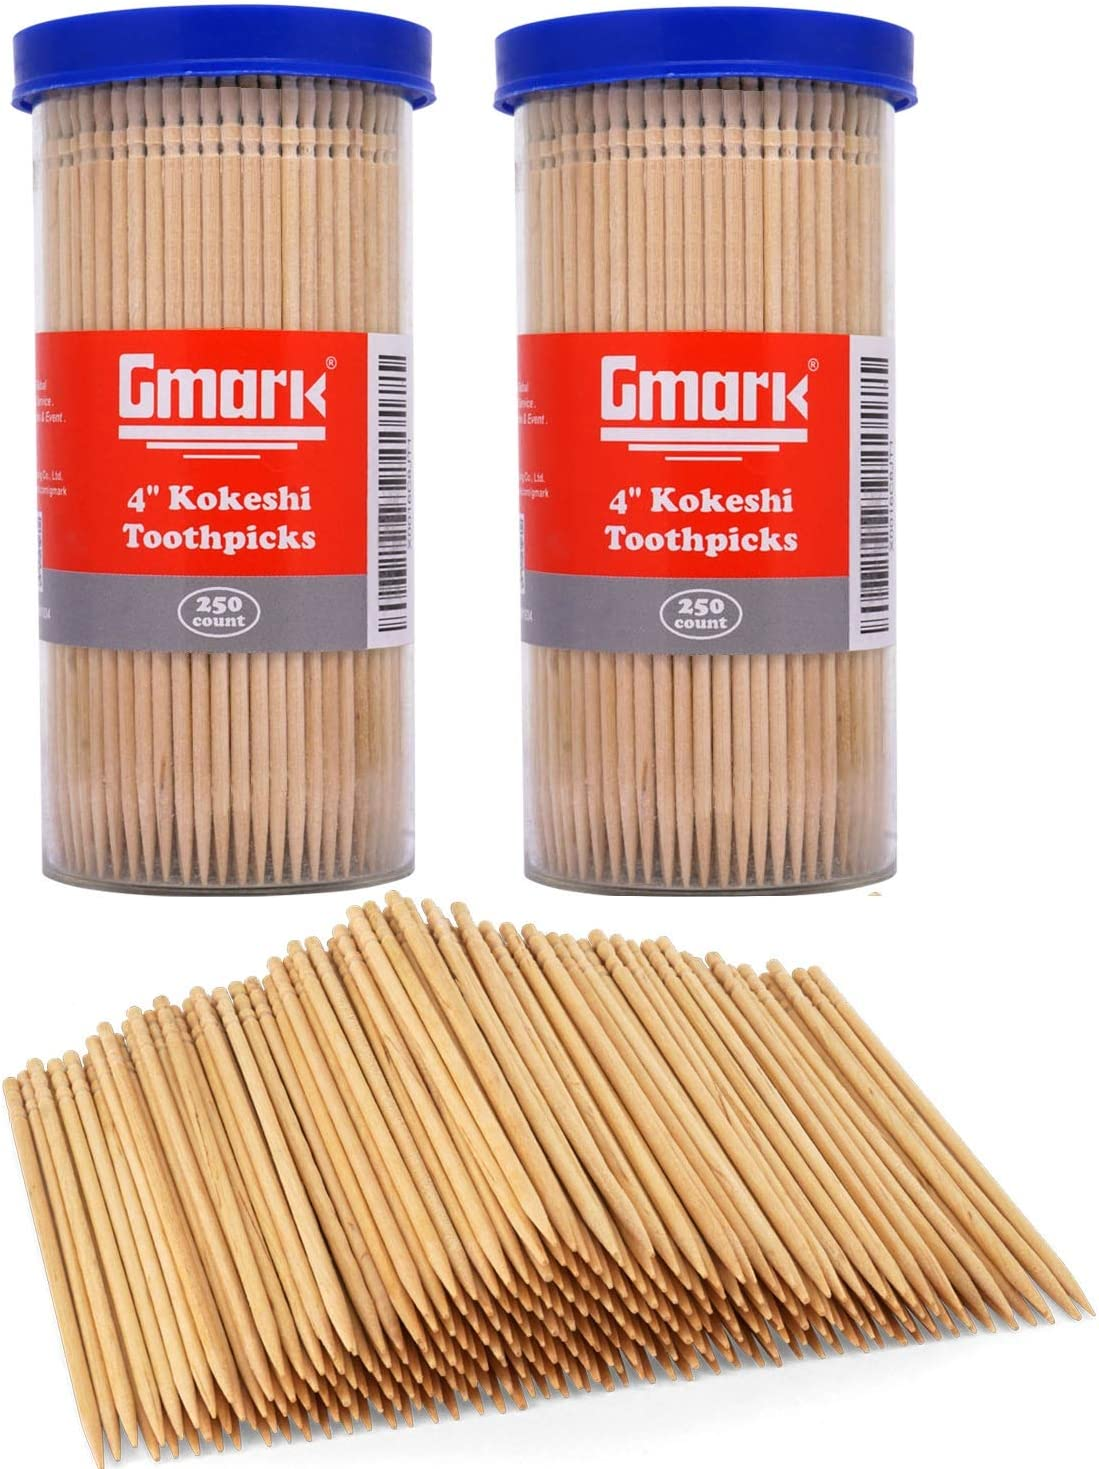 """Gmark Premium 4"""" Kokeshi Toothpicks Skewers 500ct (2 Packs of 250) Extra long toothpicks for appetizers GM1034"""